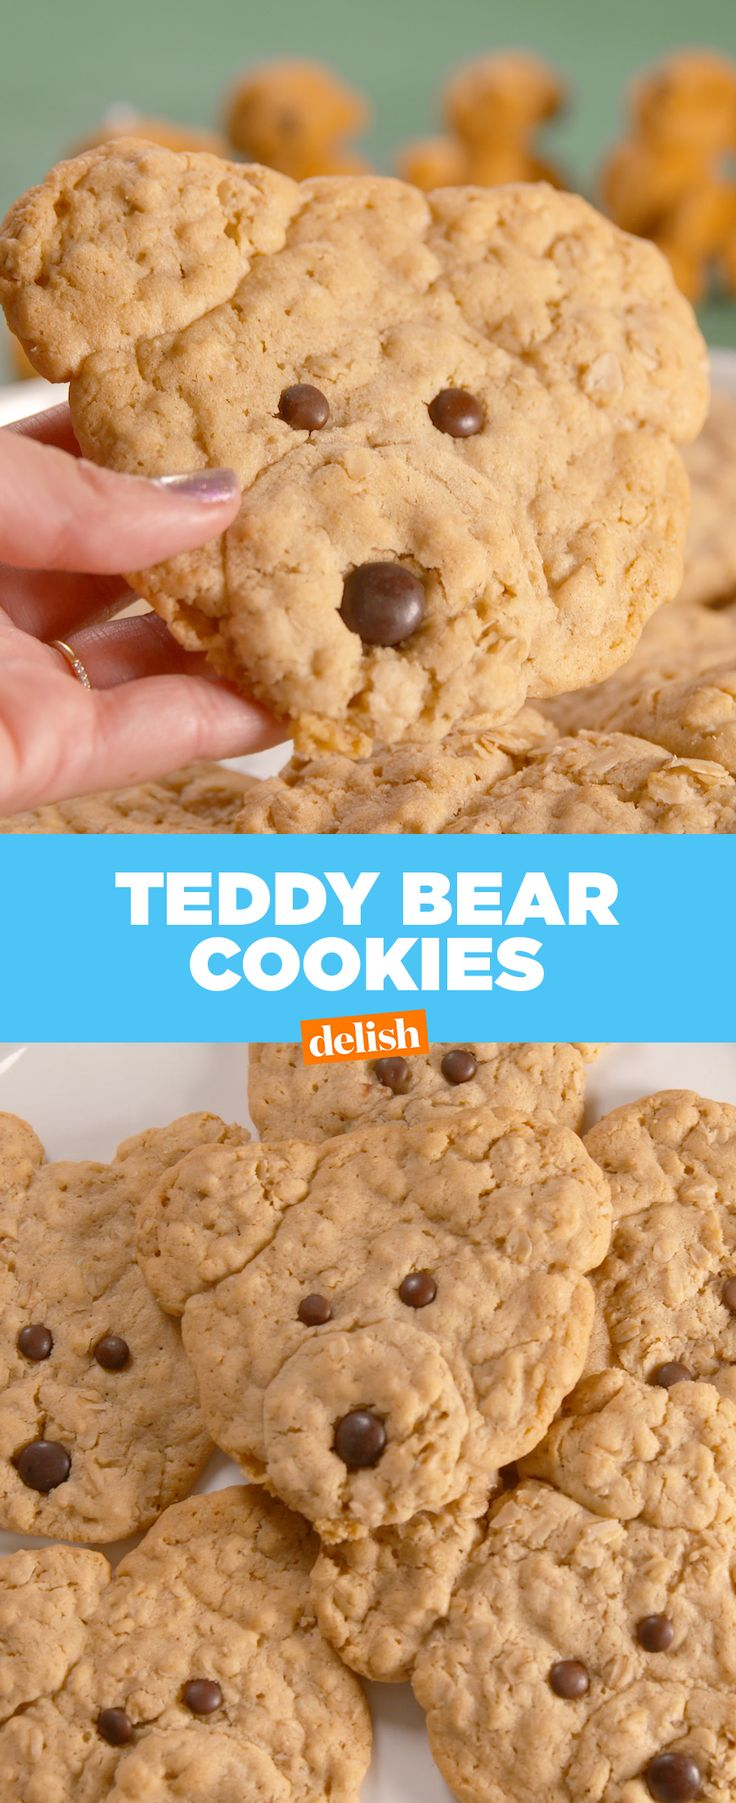 These Teddy Bear Cookies are almost too cute to eat... ALMOST. Get the recipe at Delish.com.